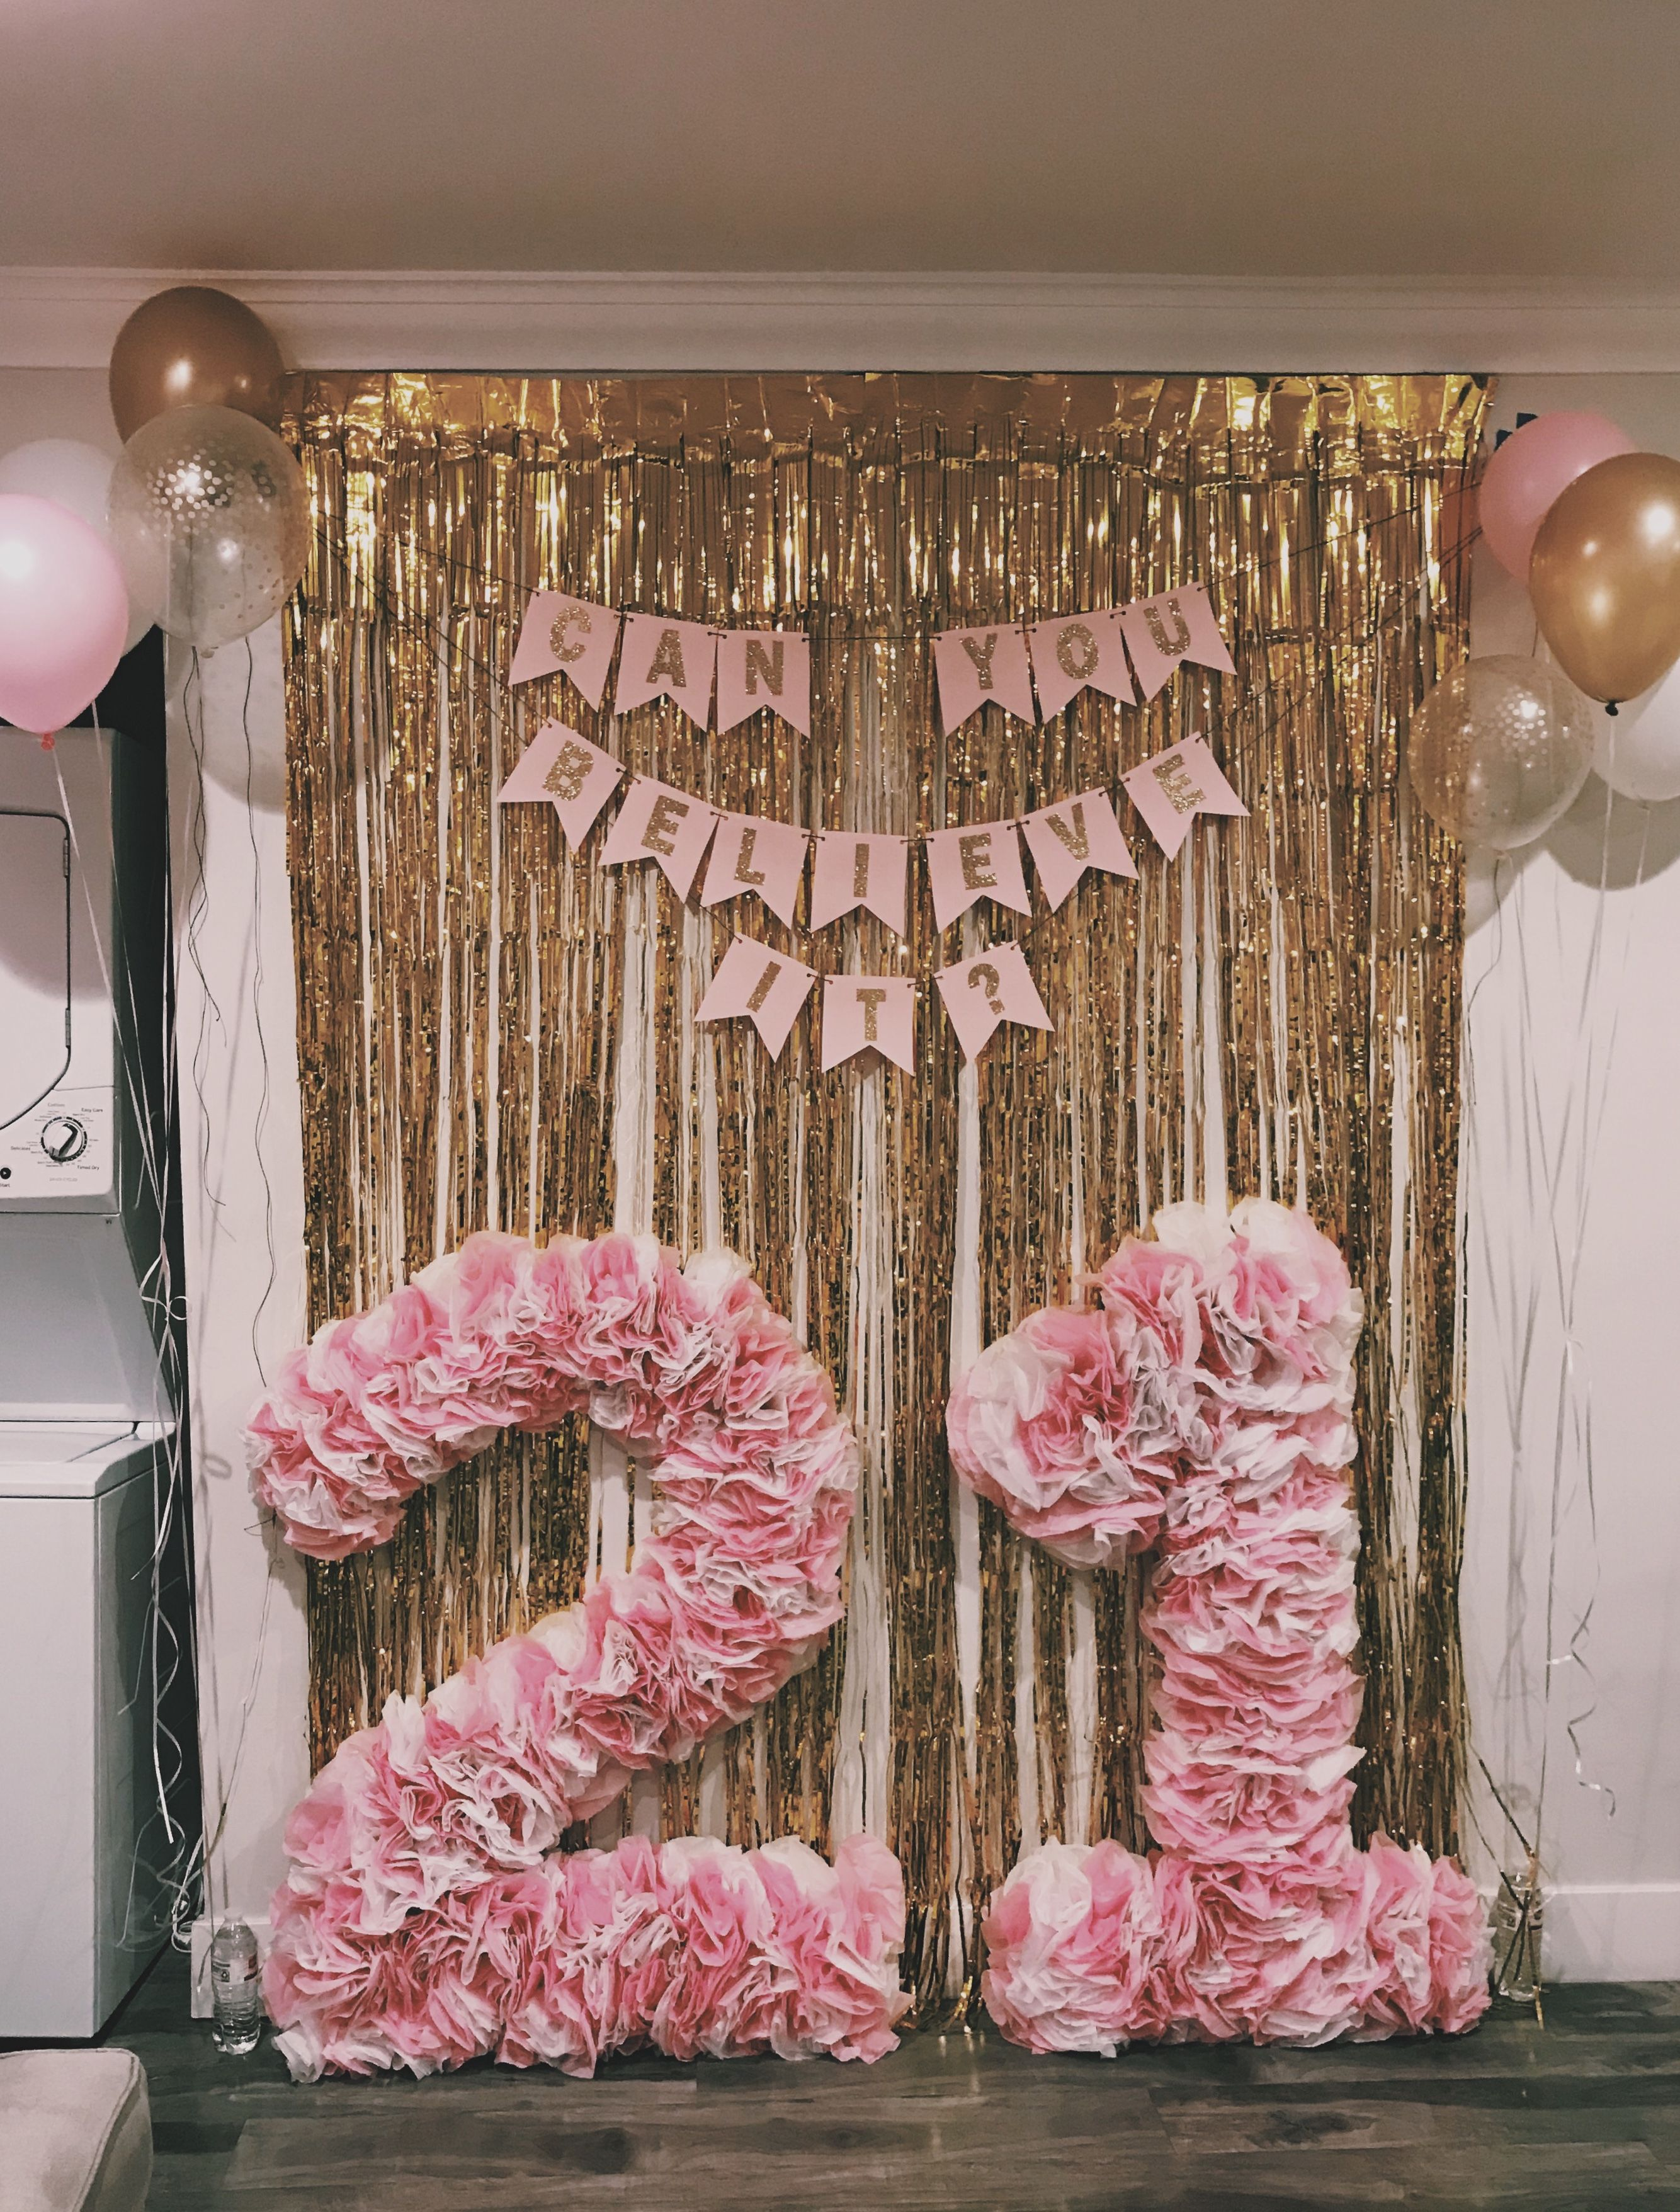 White and pink tissue hot glued to card board cutouts perfect for  birthday backdrop or photo booth prop also best party planner images in rh pinterest